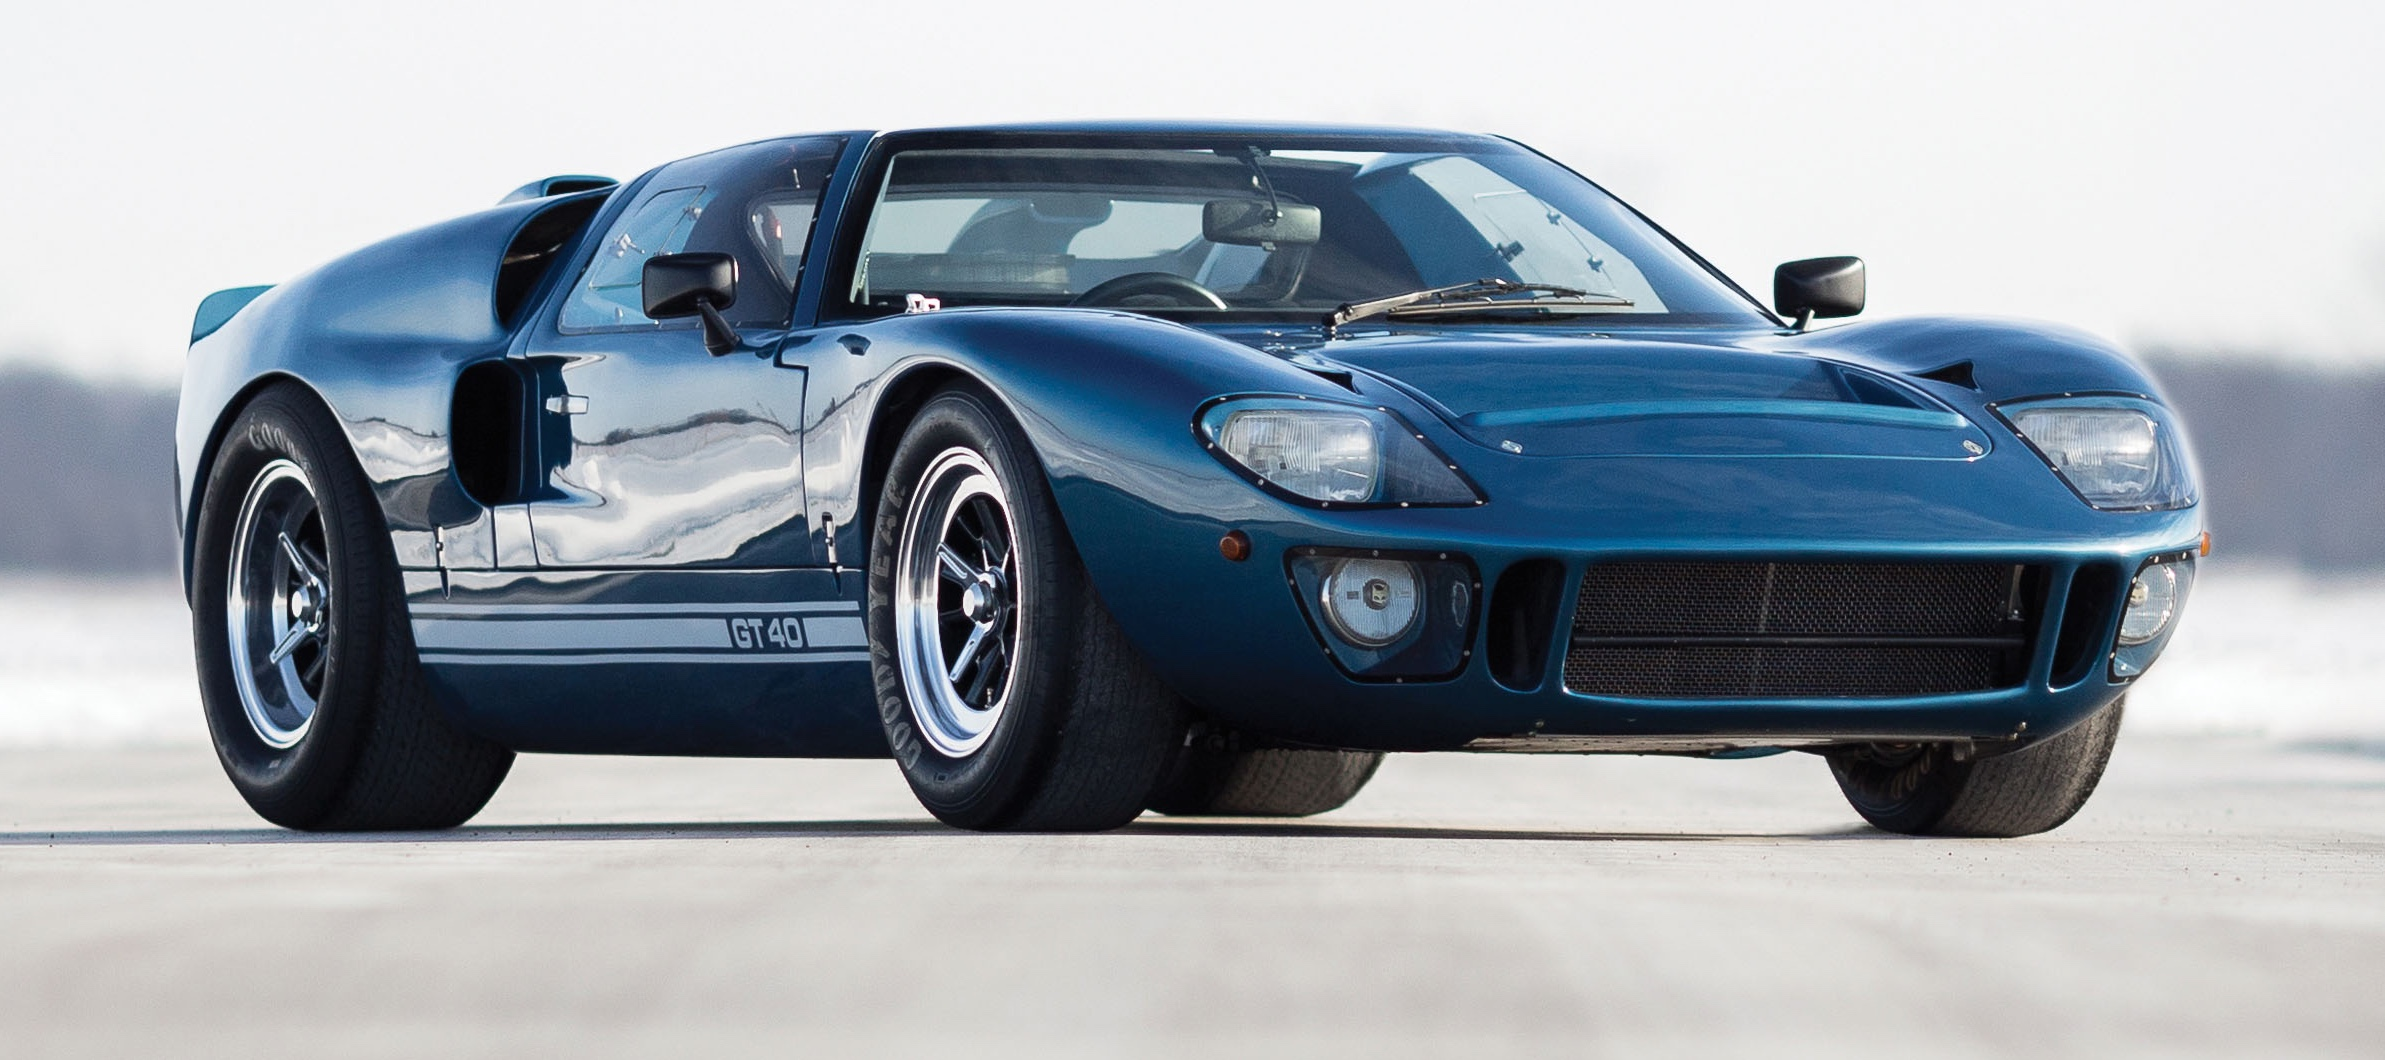 Ford GT 40 Mk V Spyder a continuation of the Le Mans-winning line | Auctions American photo by Drew Shipley